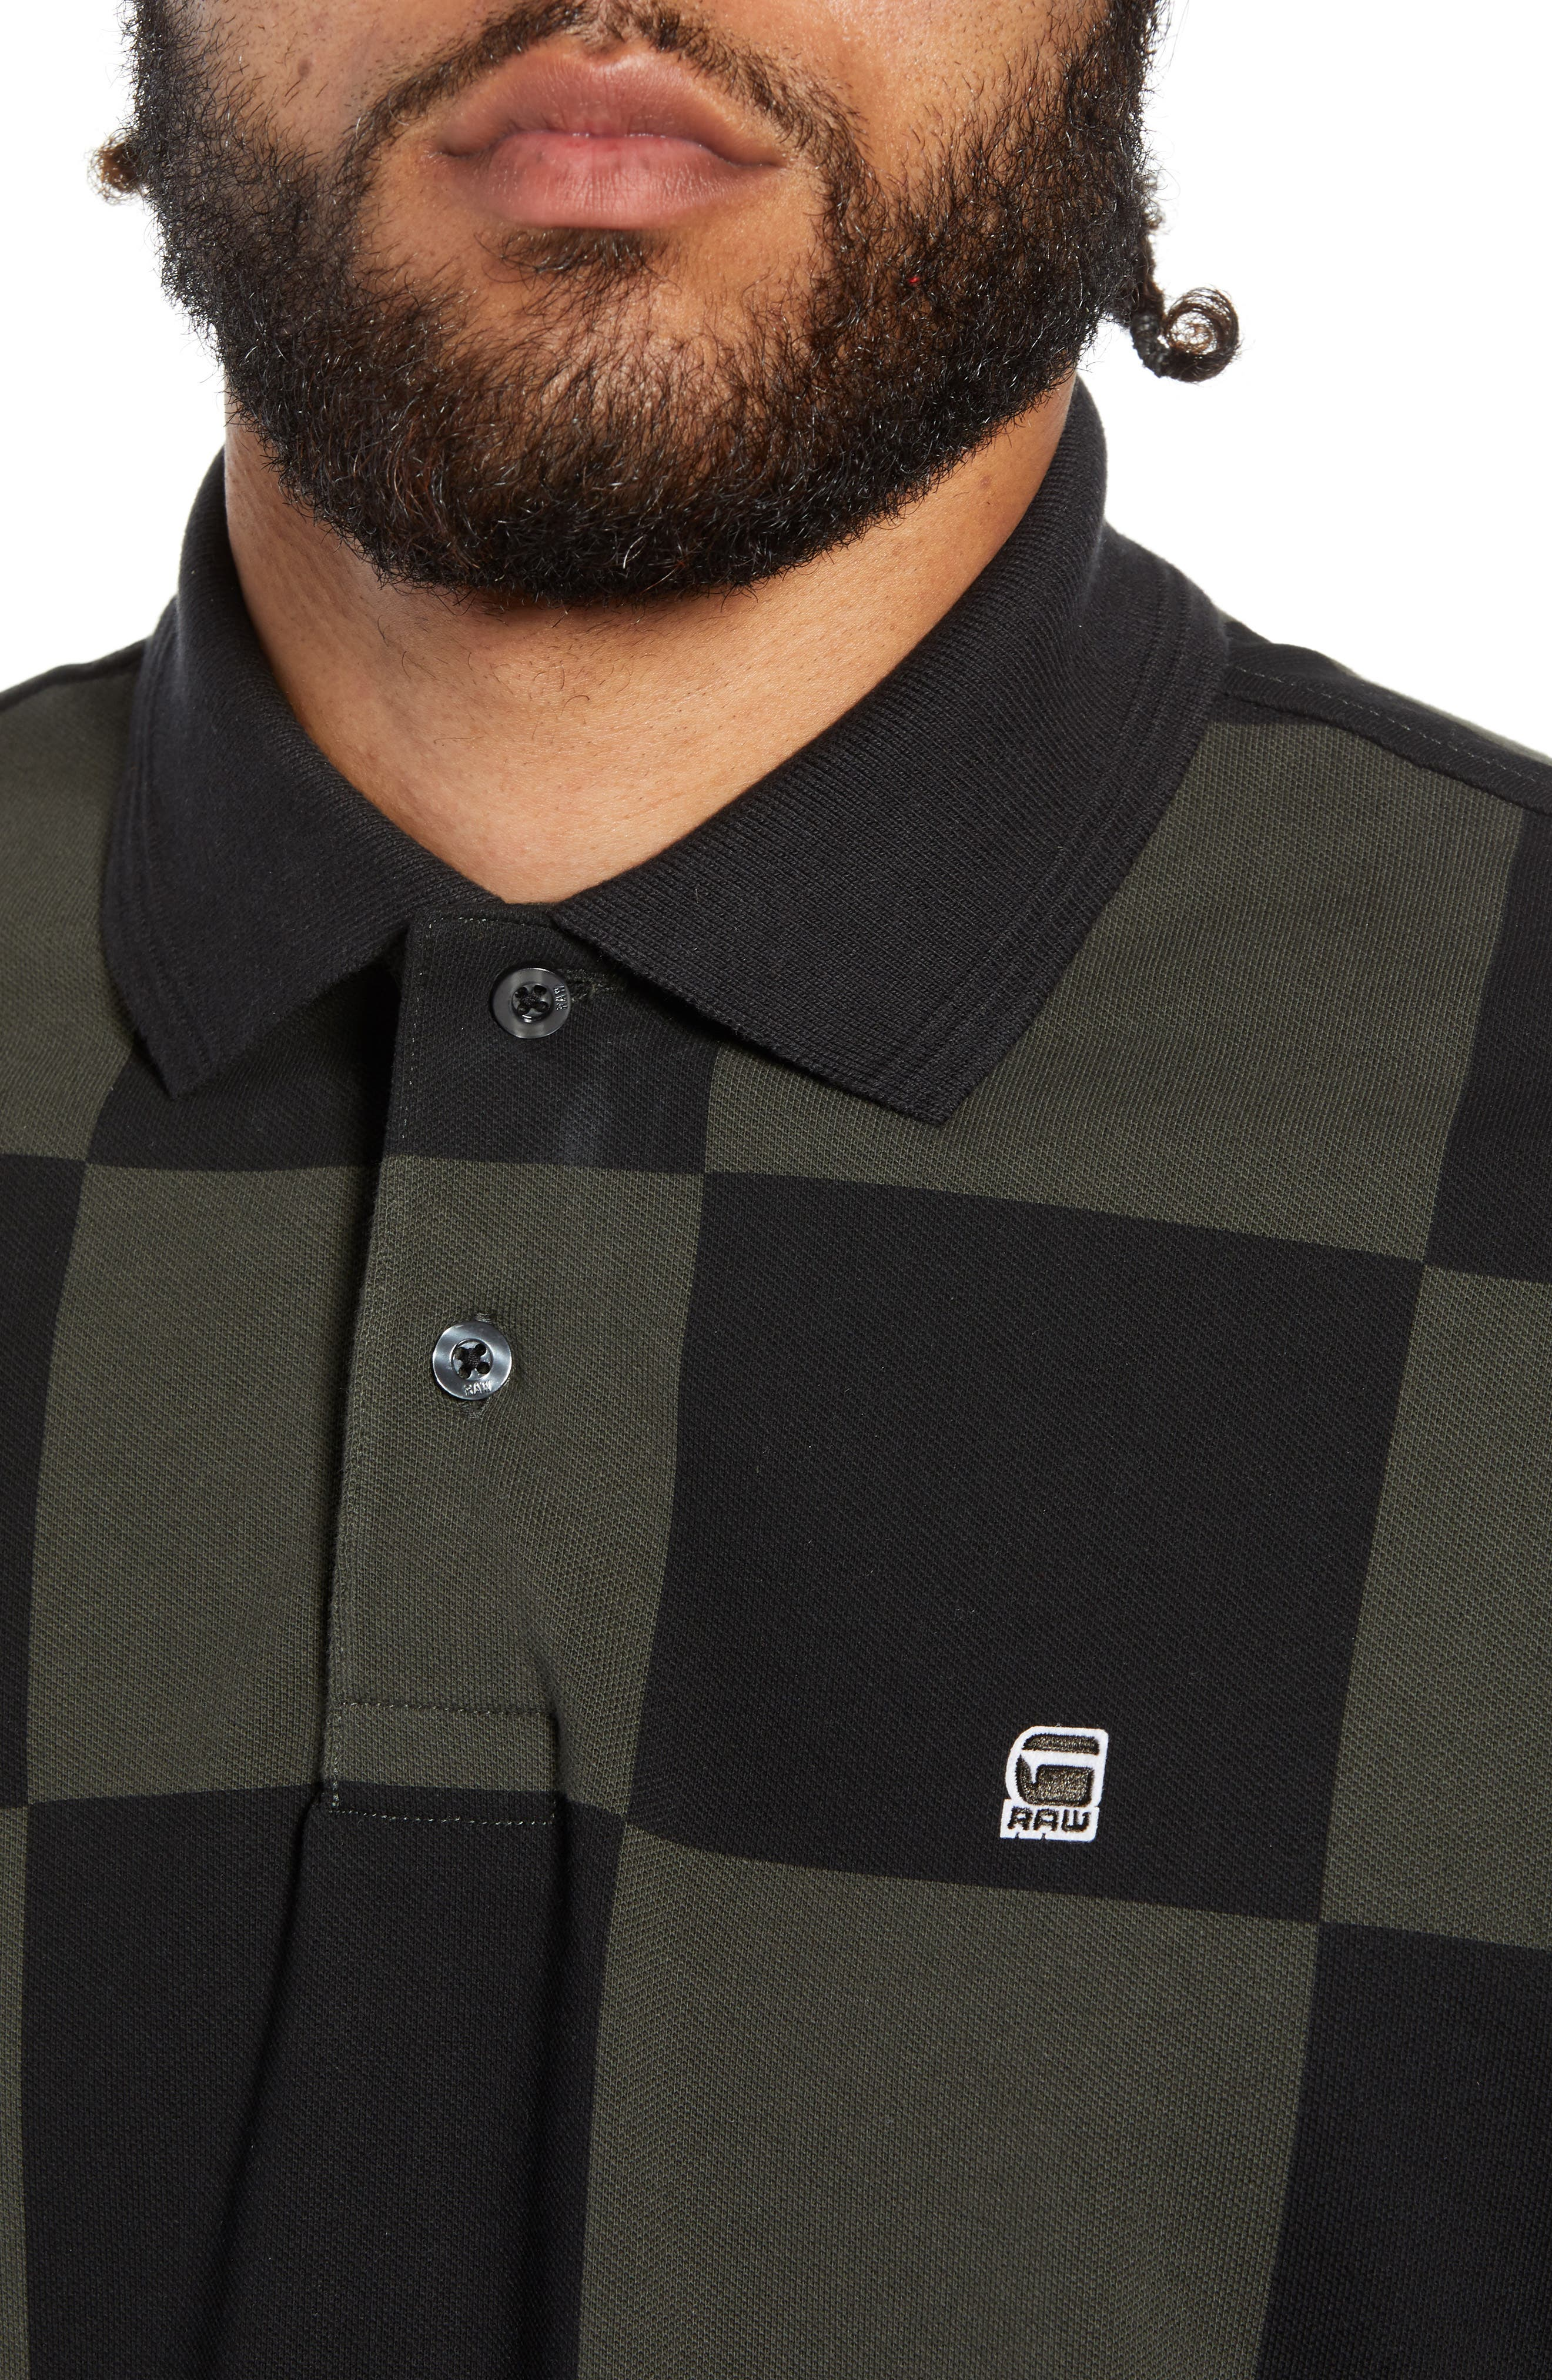 G-STAR RAW,                             Holliday Core Checker Piqué Polo,                             Alternate thumbnail 4, color,                             020